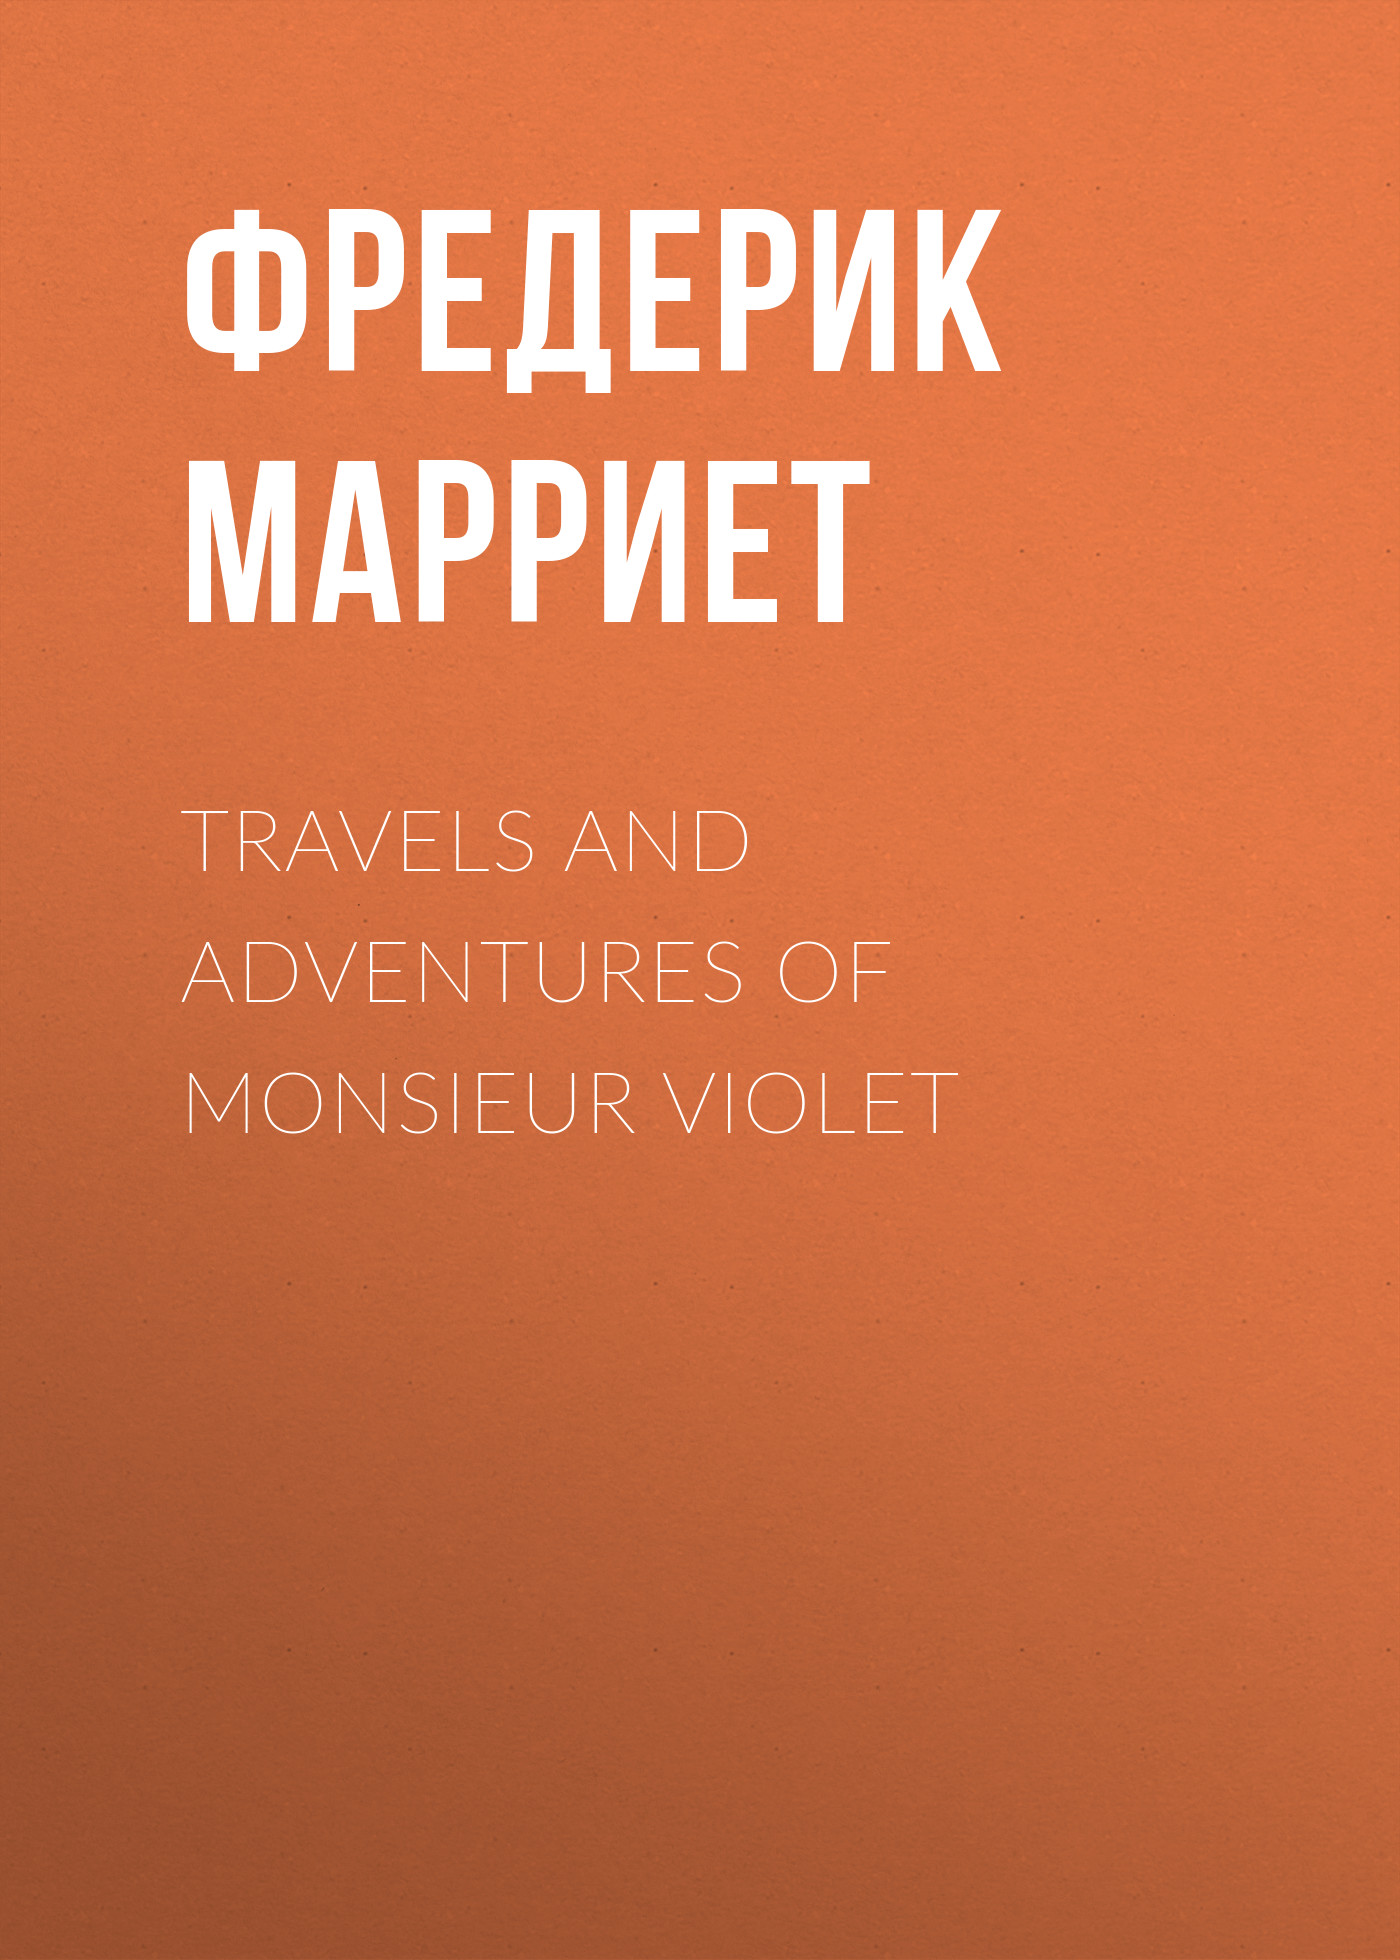 Фредерик Марриет Travels and Adventures of Monsieur Violet фредерик марриет the travels and adventures of monsieur violet in california sonora and western texas